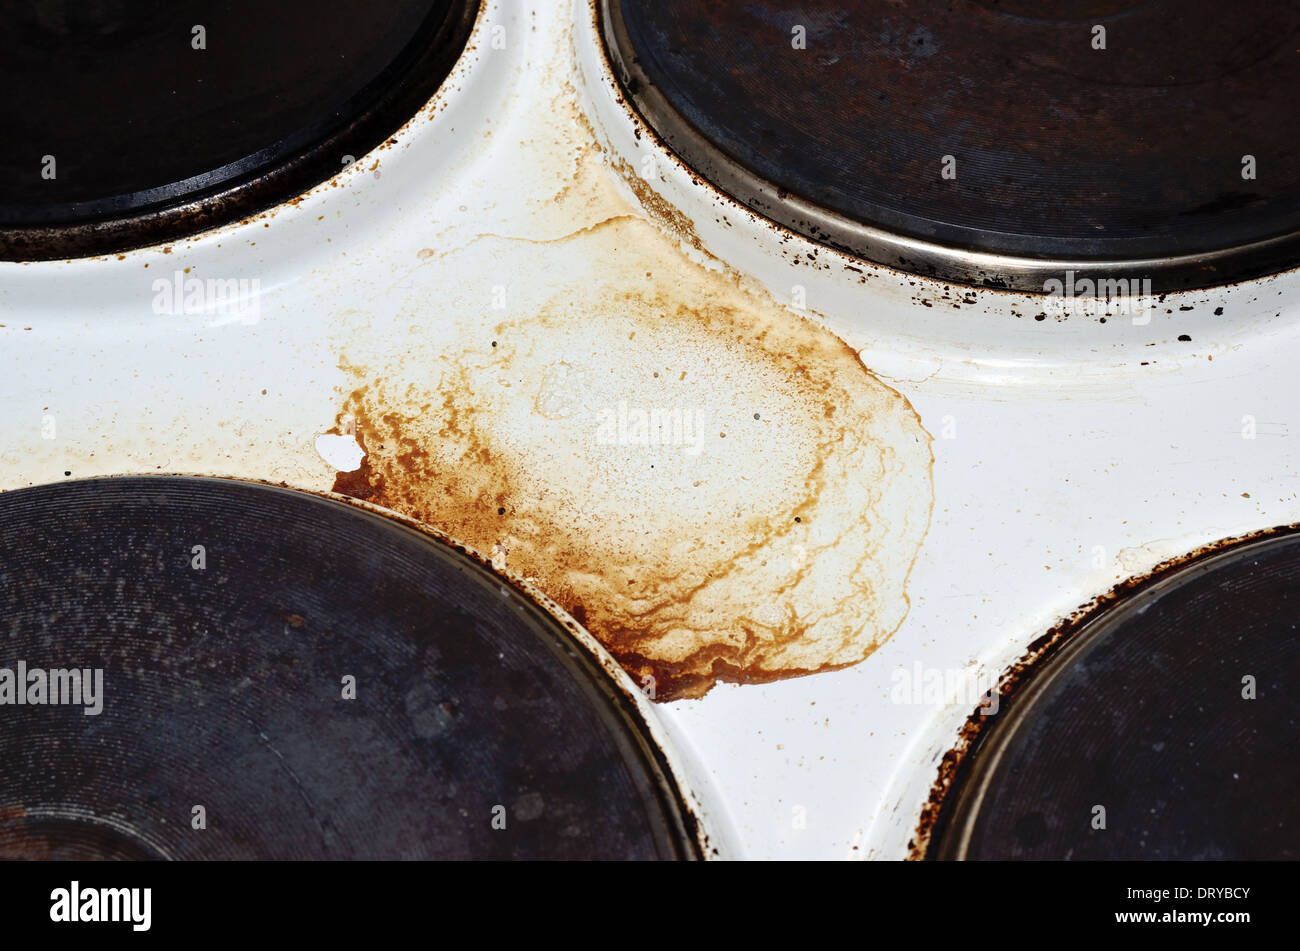 old white enamelled dirty electric cooker, horizontal - Stock Image